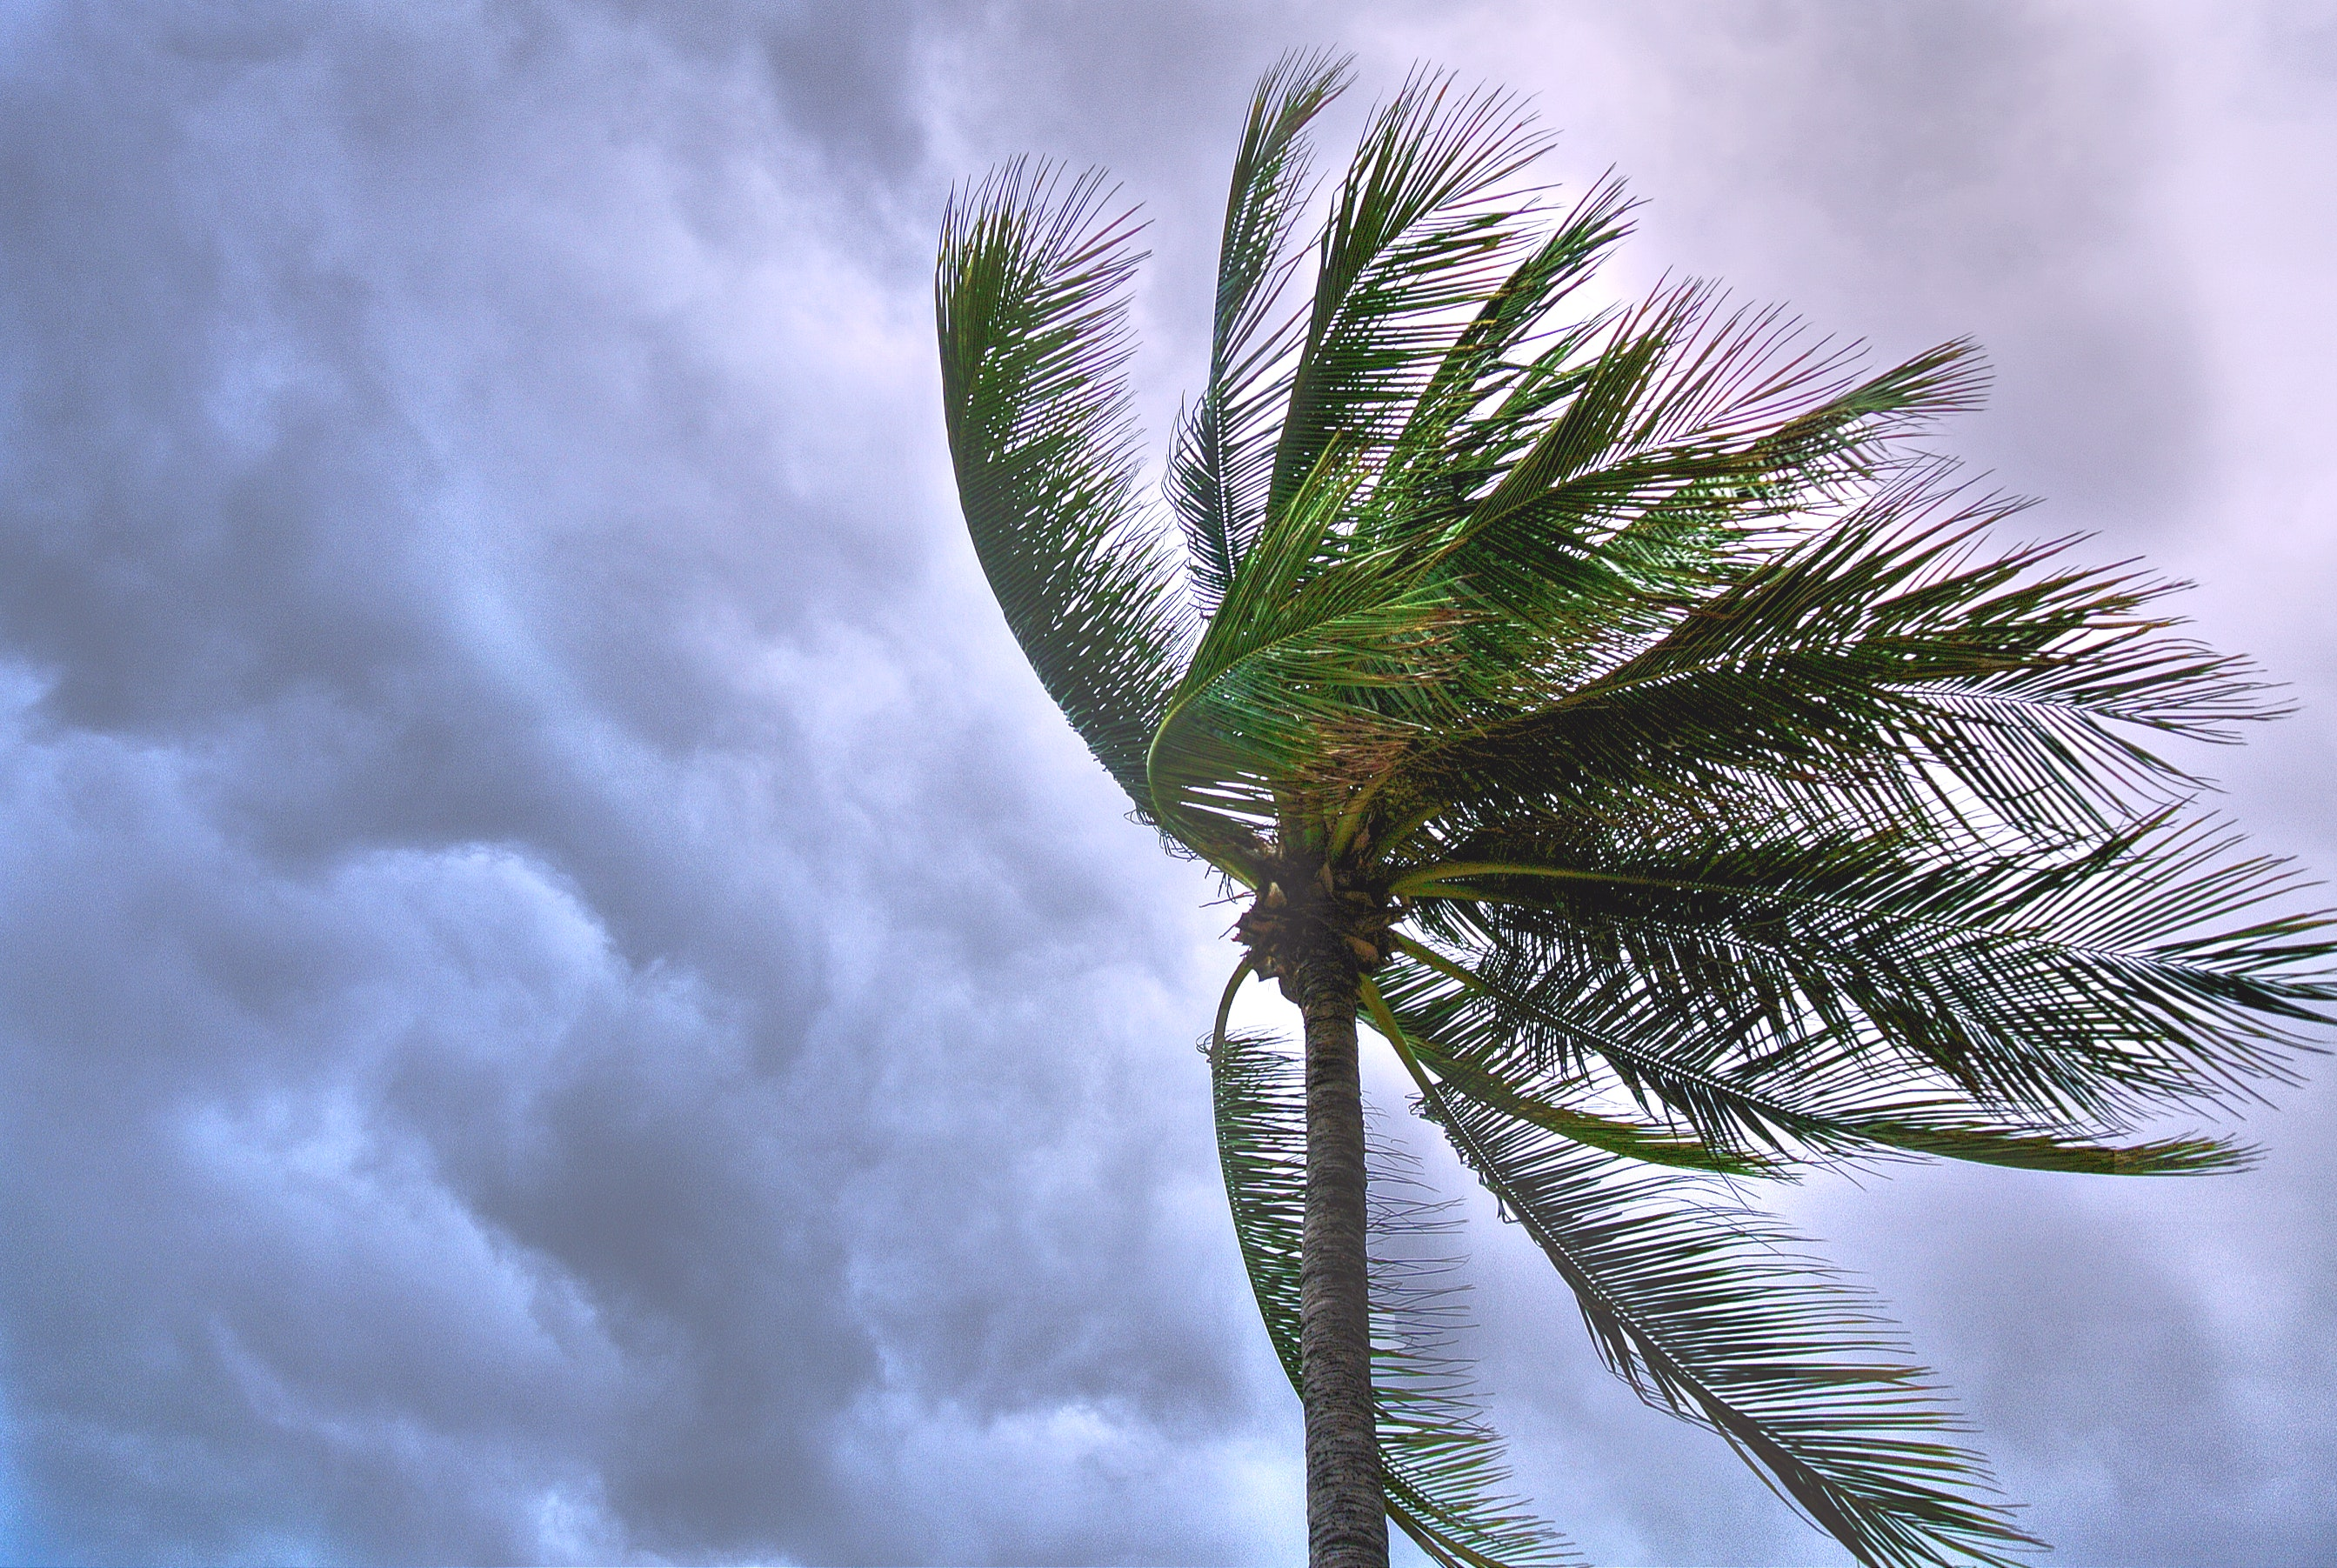 storm making coconut tree leaves sway